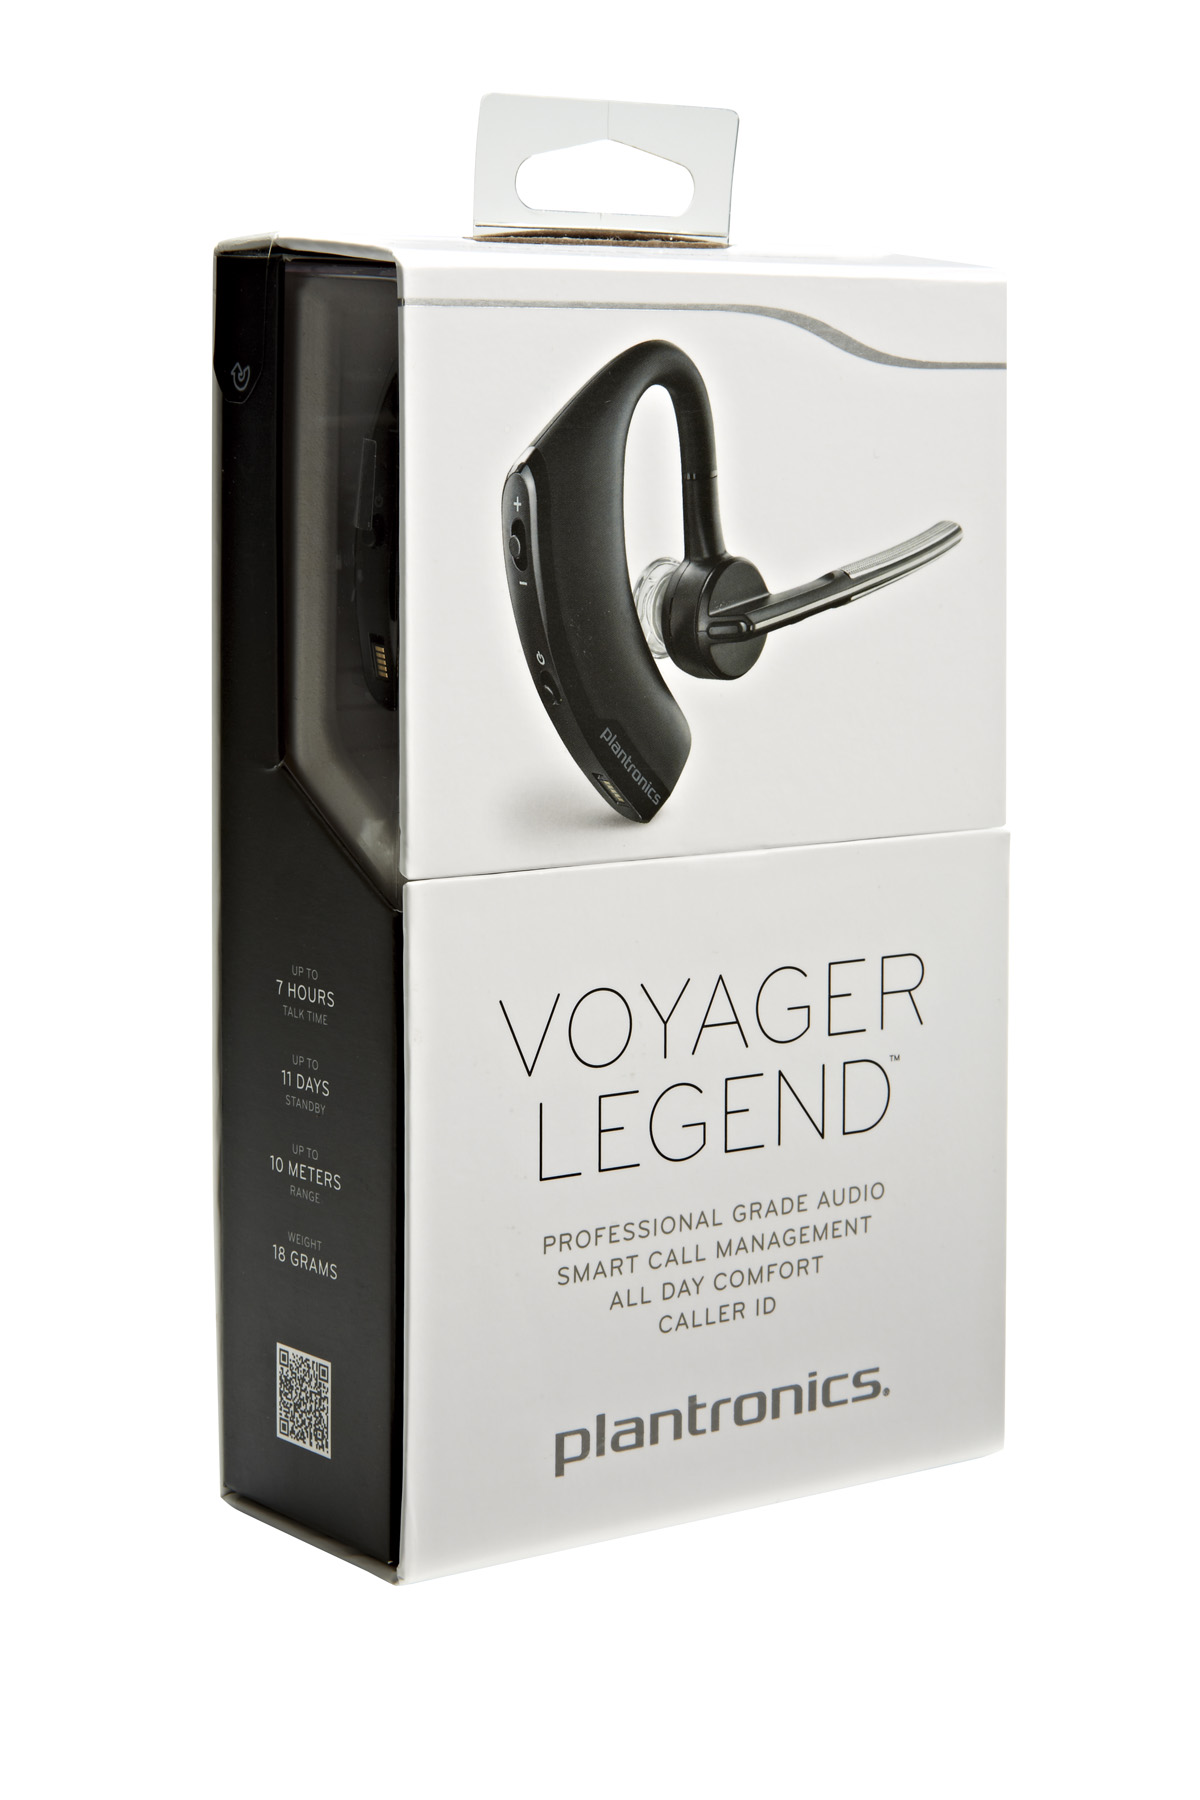 Plantronics Voyager Legend Box